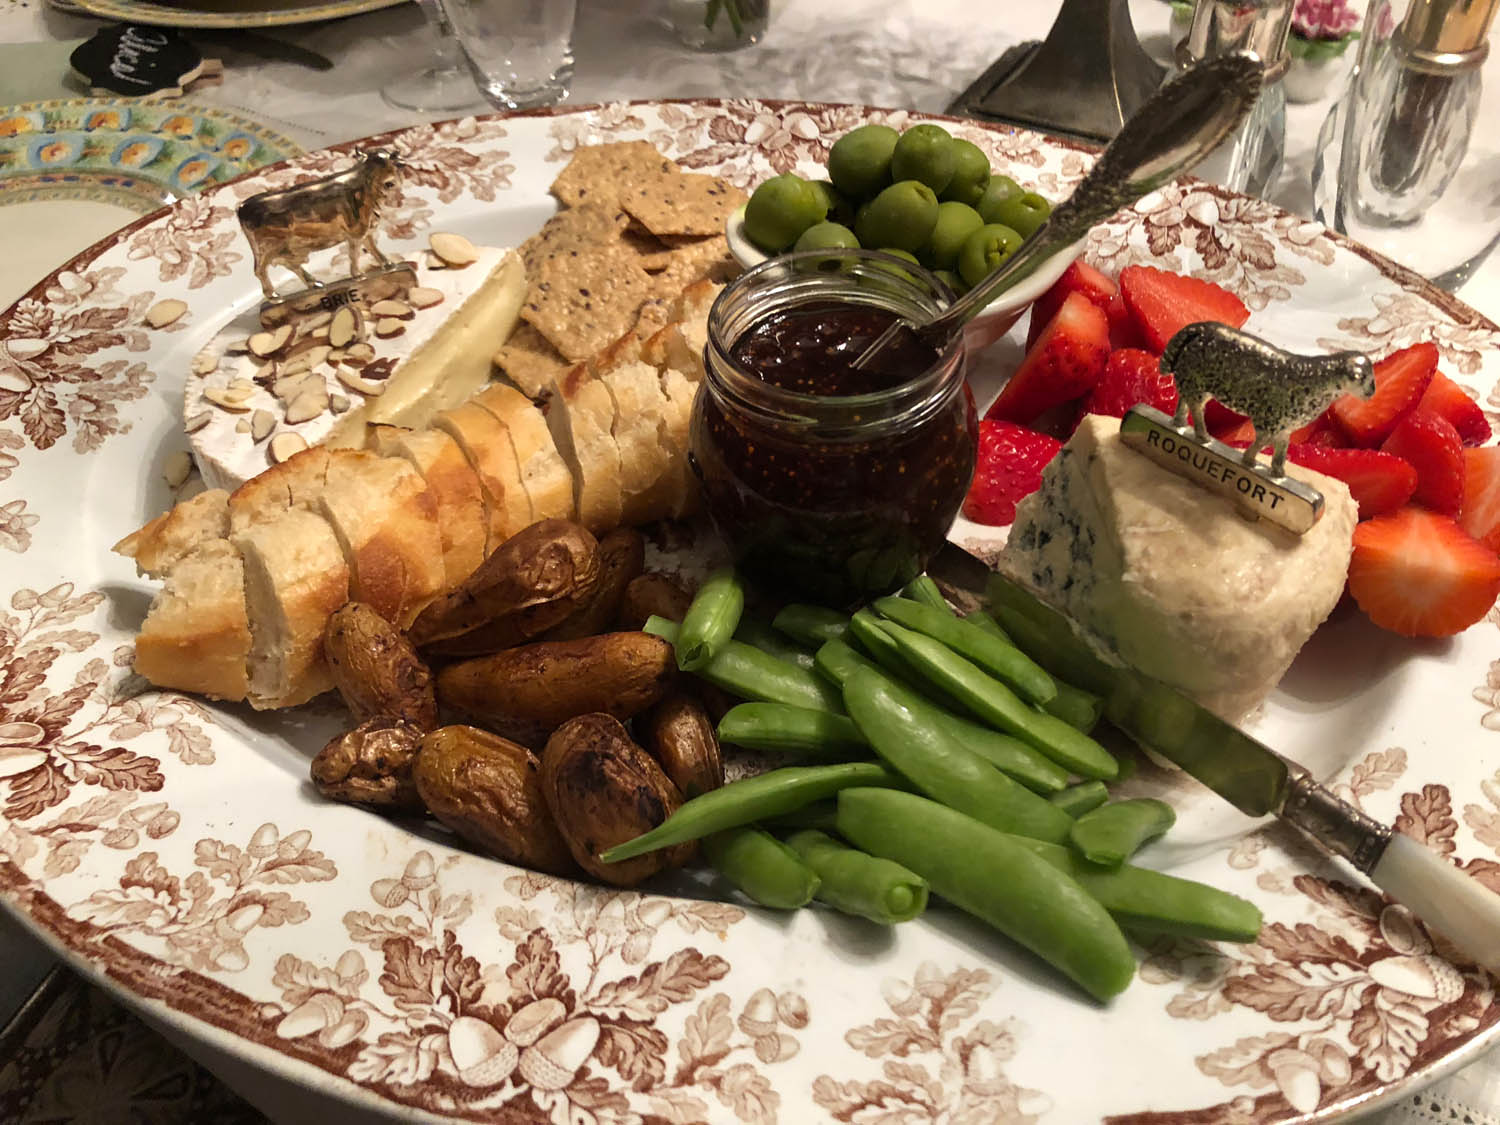 crusty bread, olives and other simple ingredients on hand served on a platter for appetizers